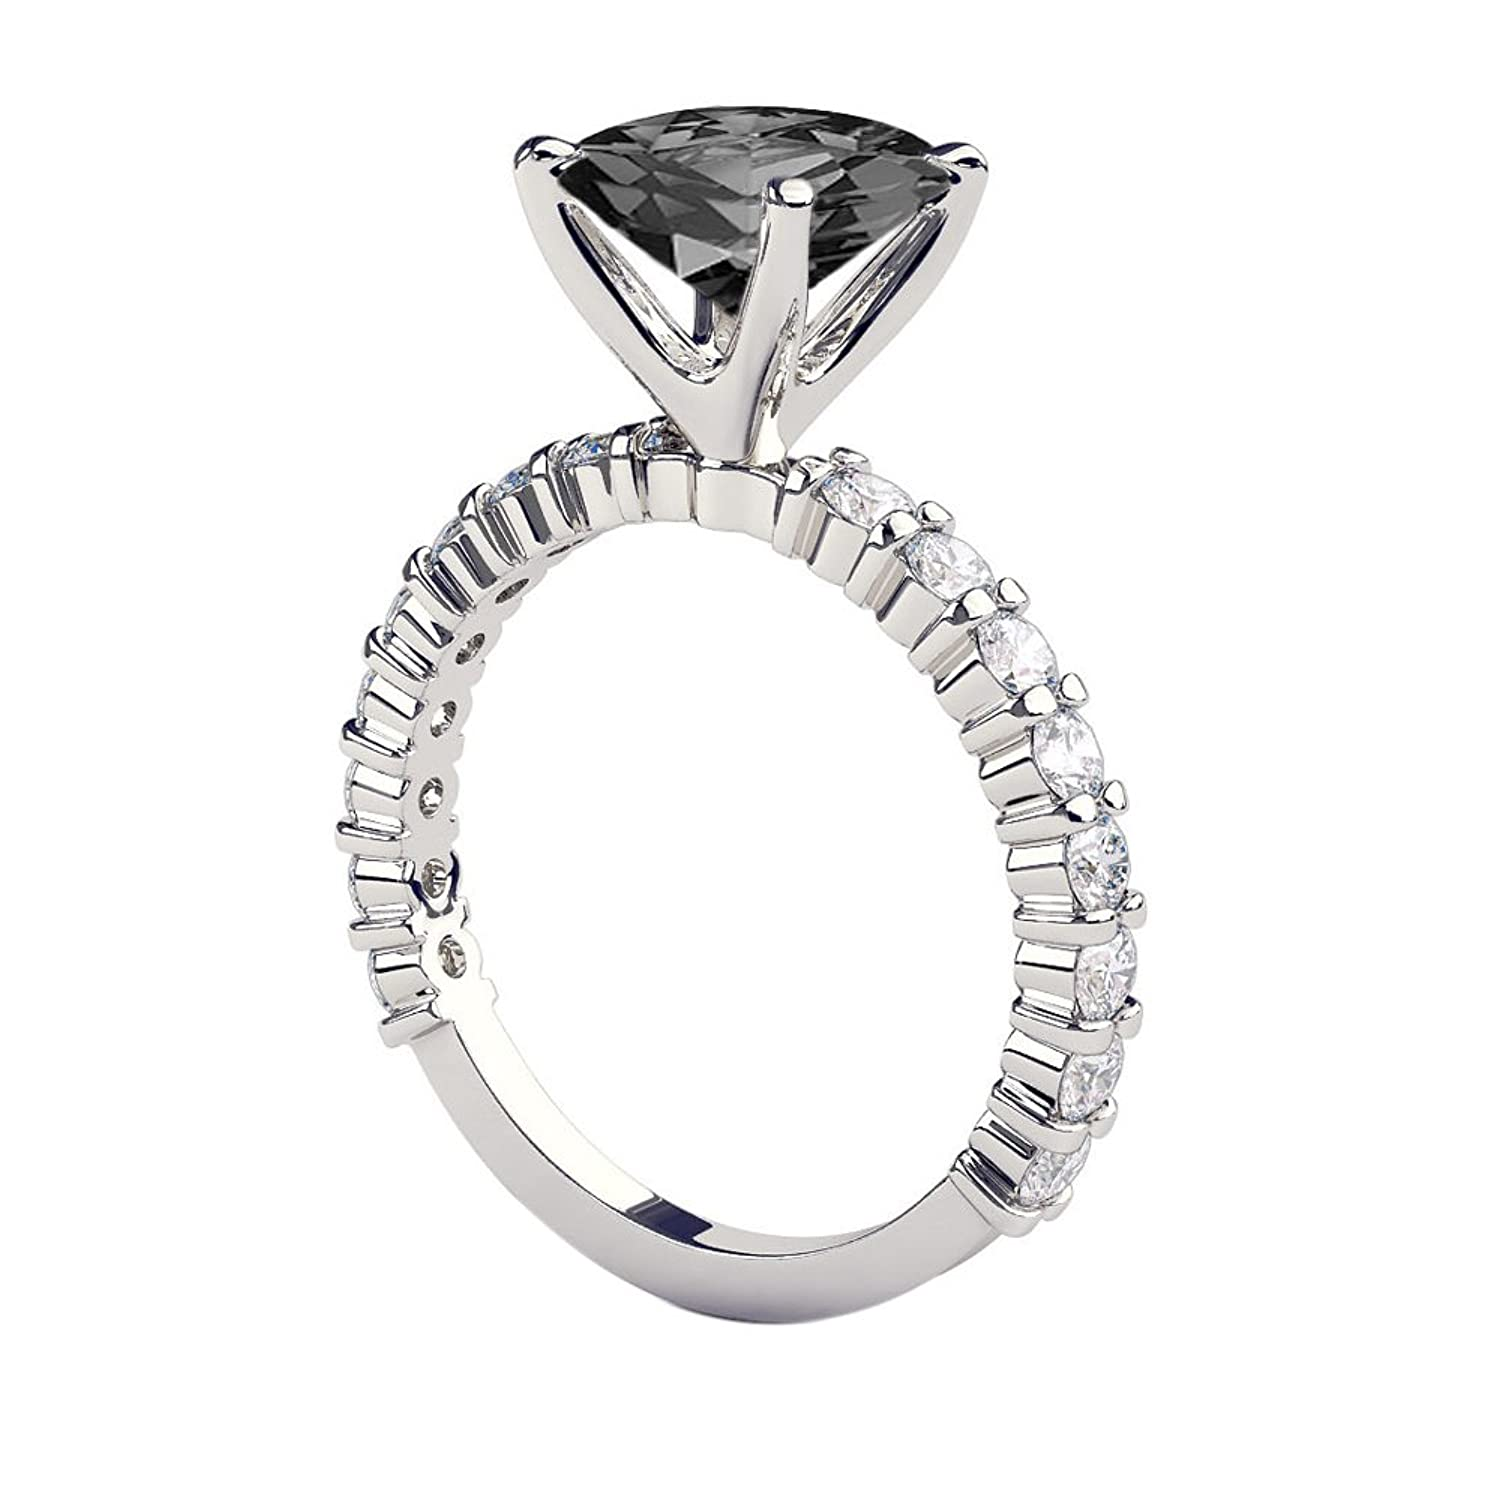 Black Diamond Ring 14K White Gold Princess Cut Solitaire With Accents Designer